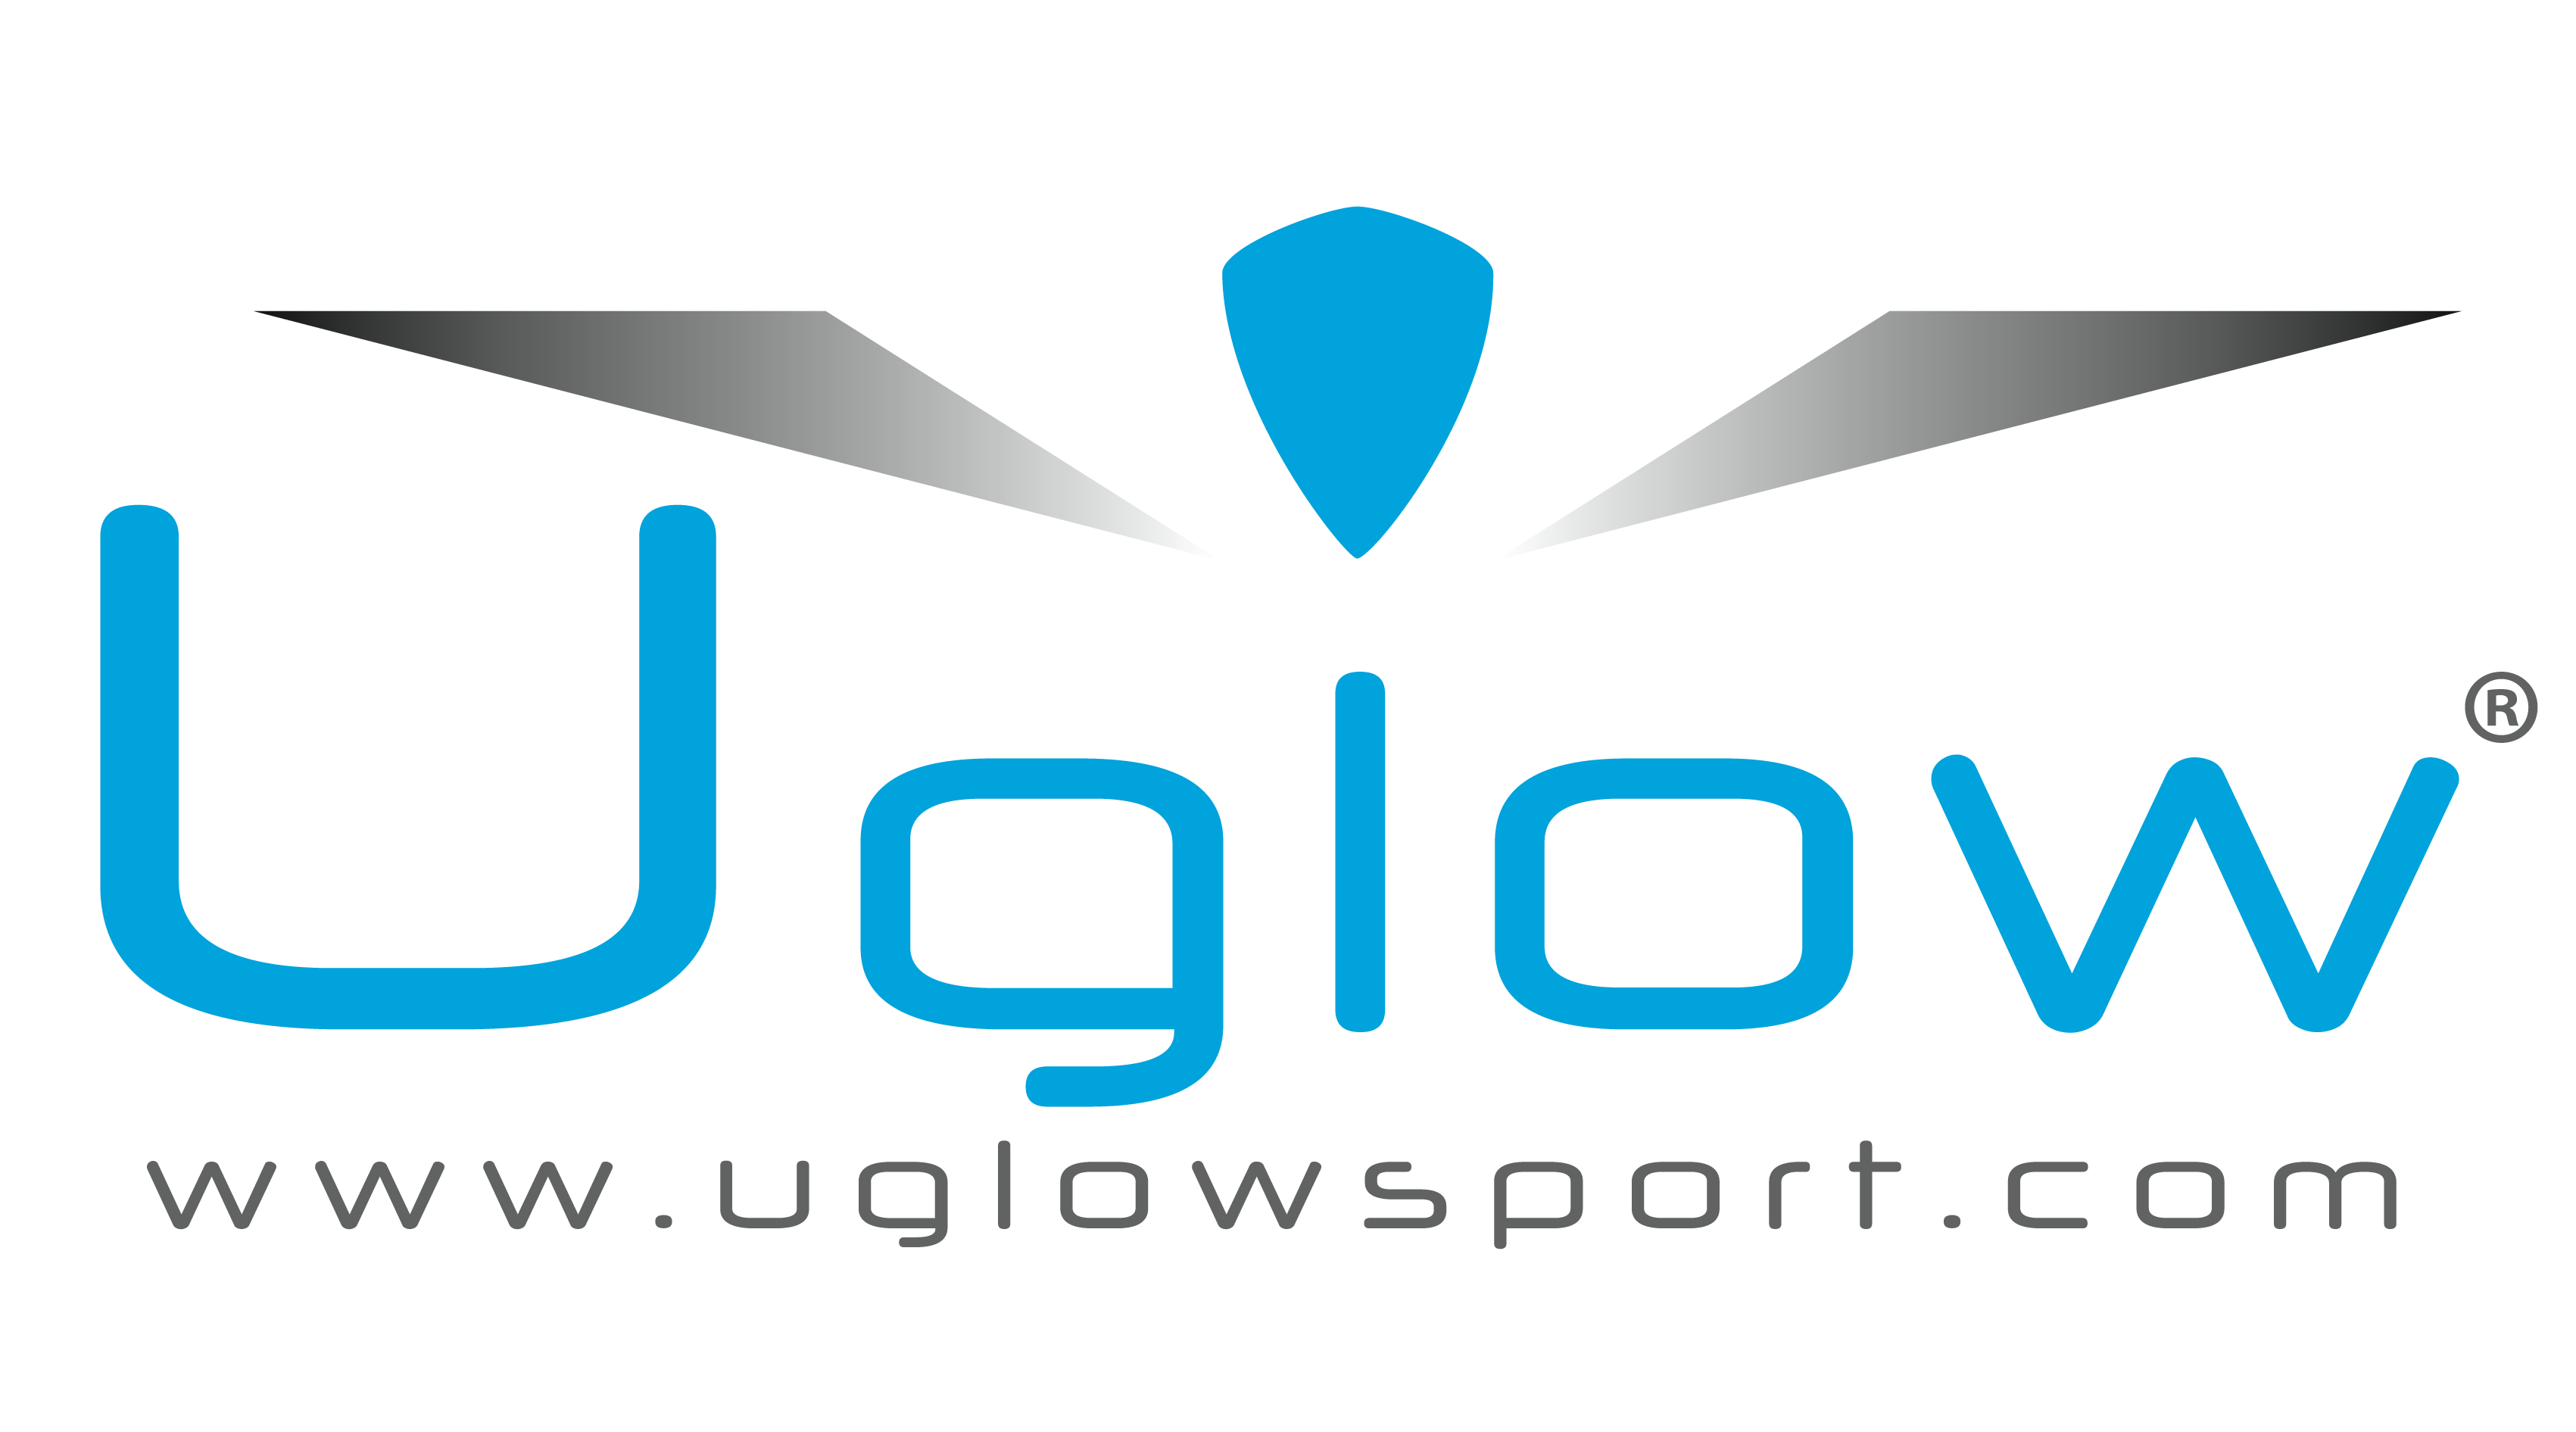 Uglowsport France